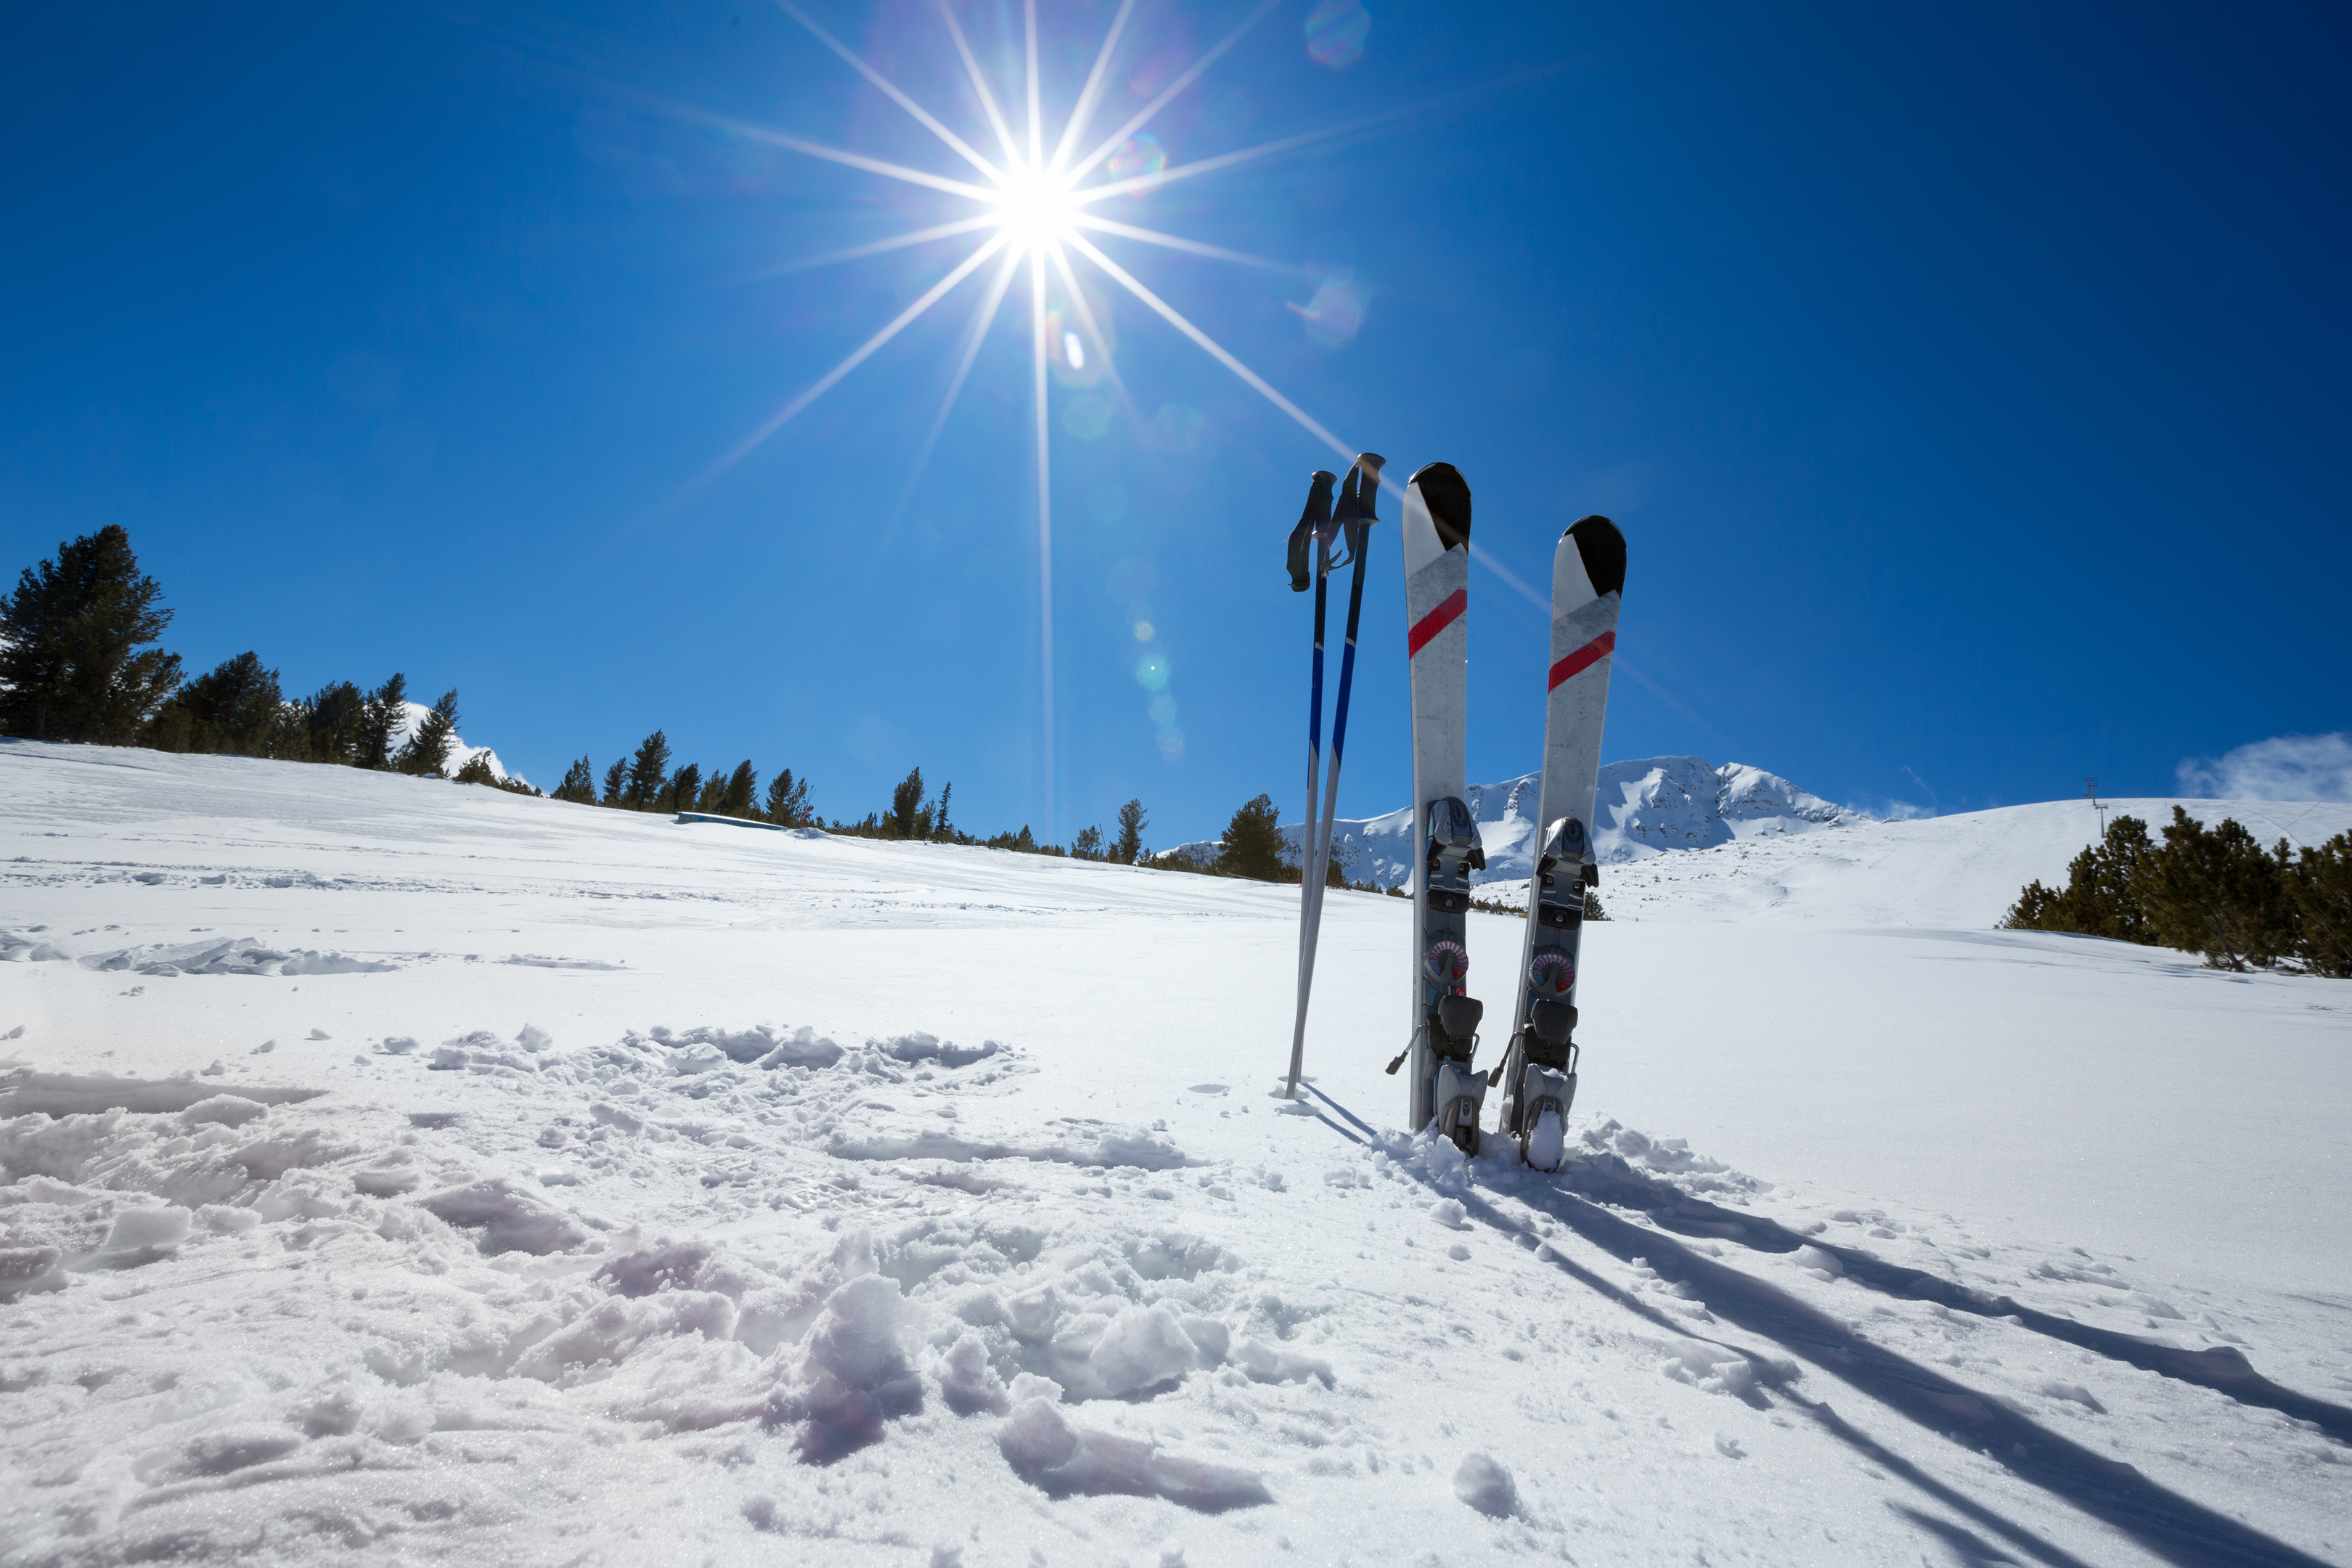 Prices are down in 15 out of 20 ski resorts surveyed (iStock)